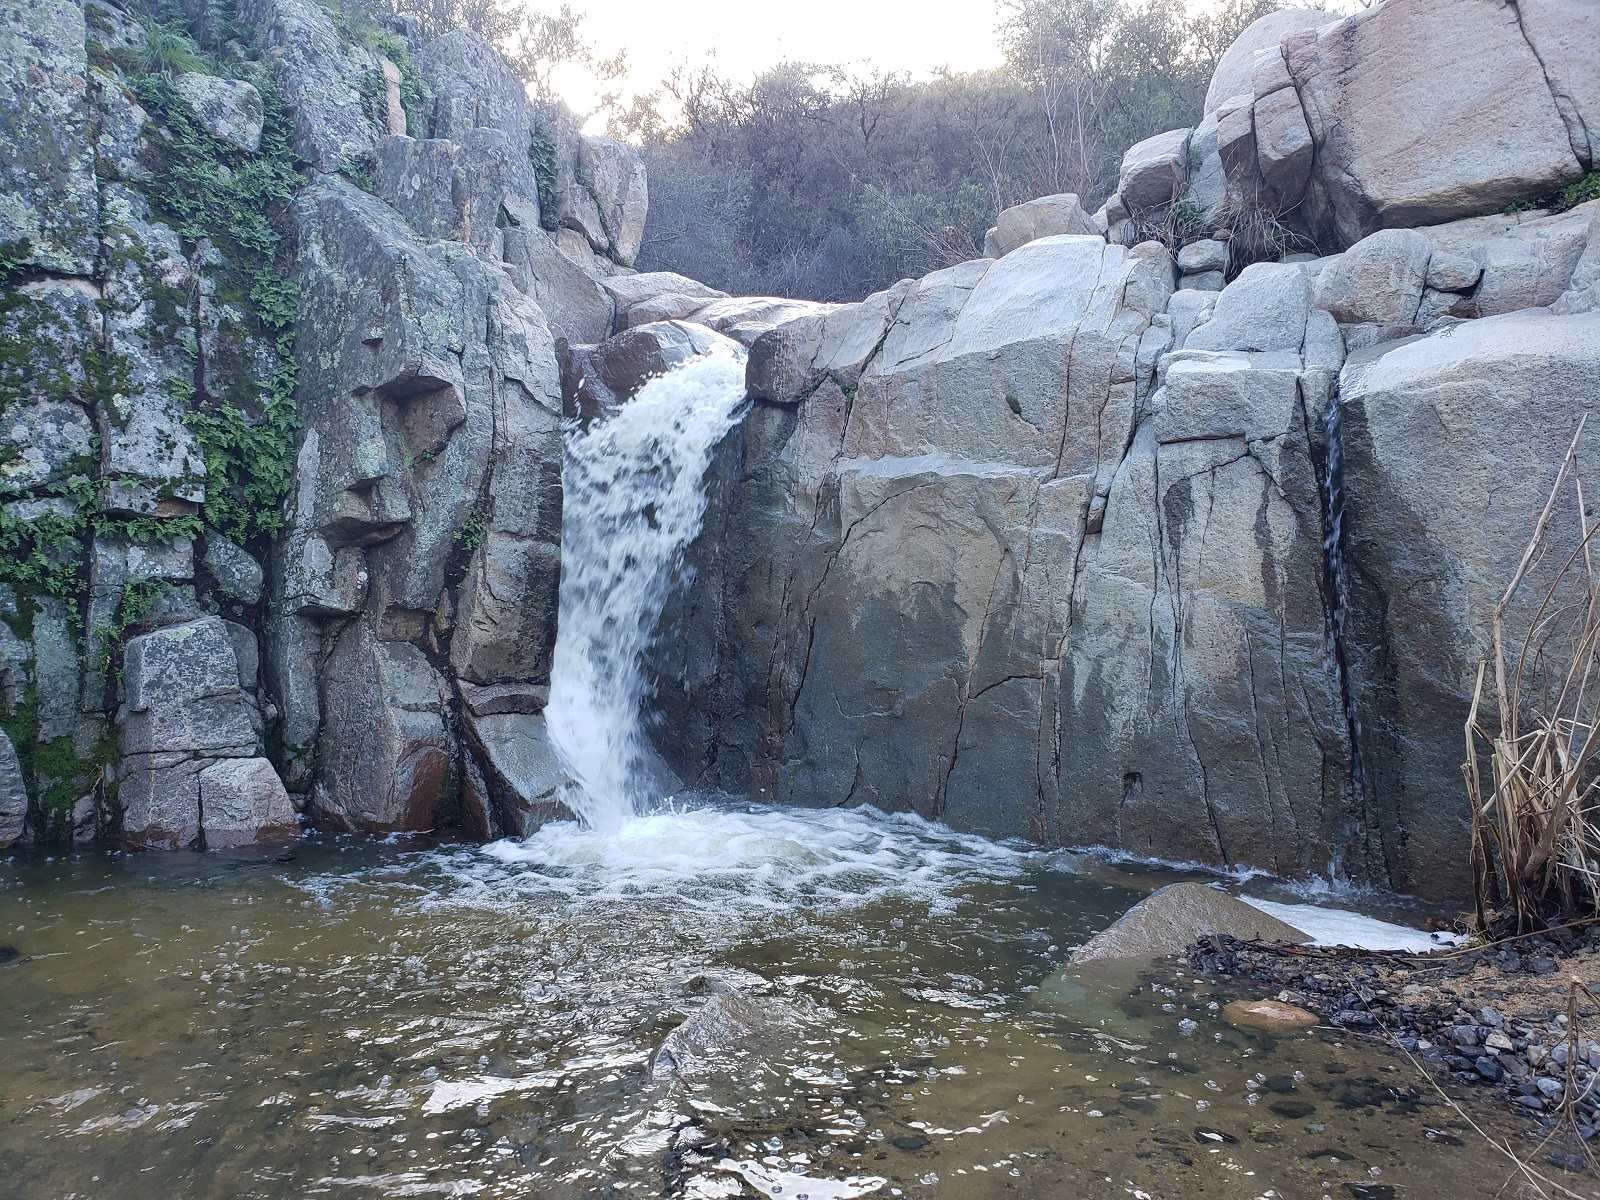 Chiquito Falls, Cleveland National Forest